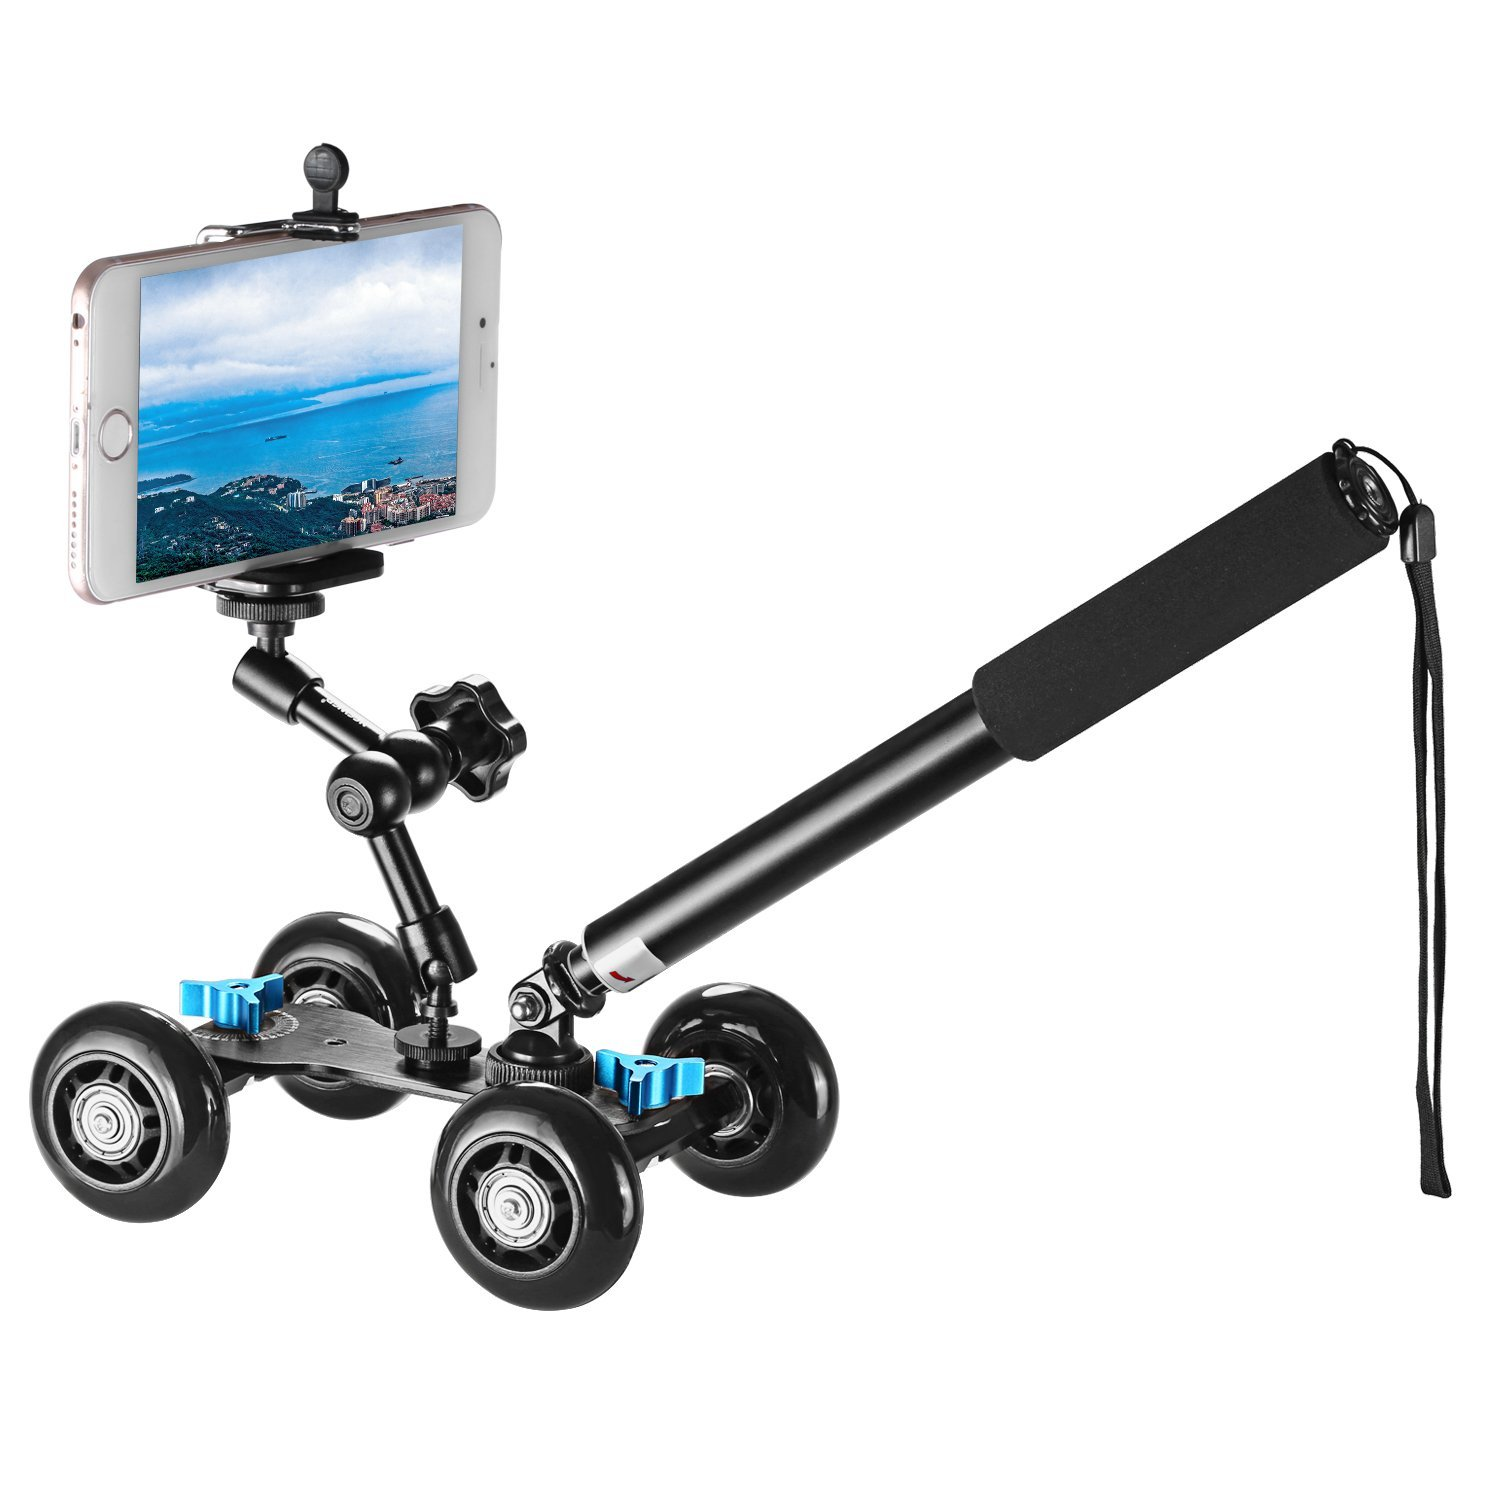 Image 2 - Camera Dolly Kit Mobile Rolling Sliding Dolly Stabilizer Skater Slider Hand Held Monopod 7 inches Adjustable Friction Magic Arm-in Photo Studio Accessories from Consumer Electronics